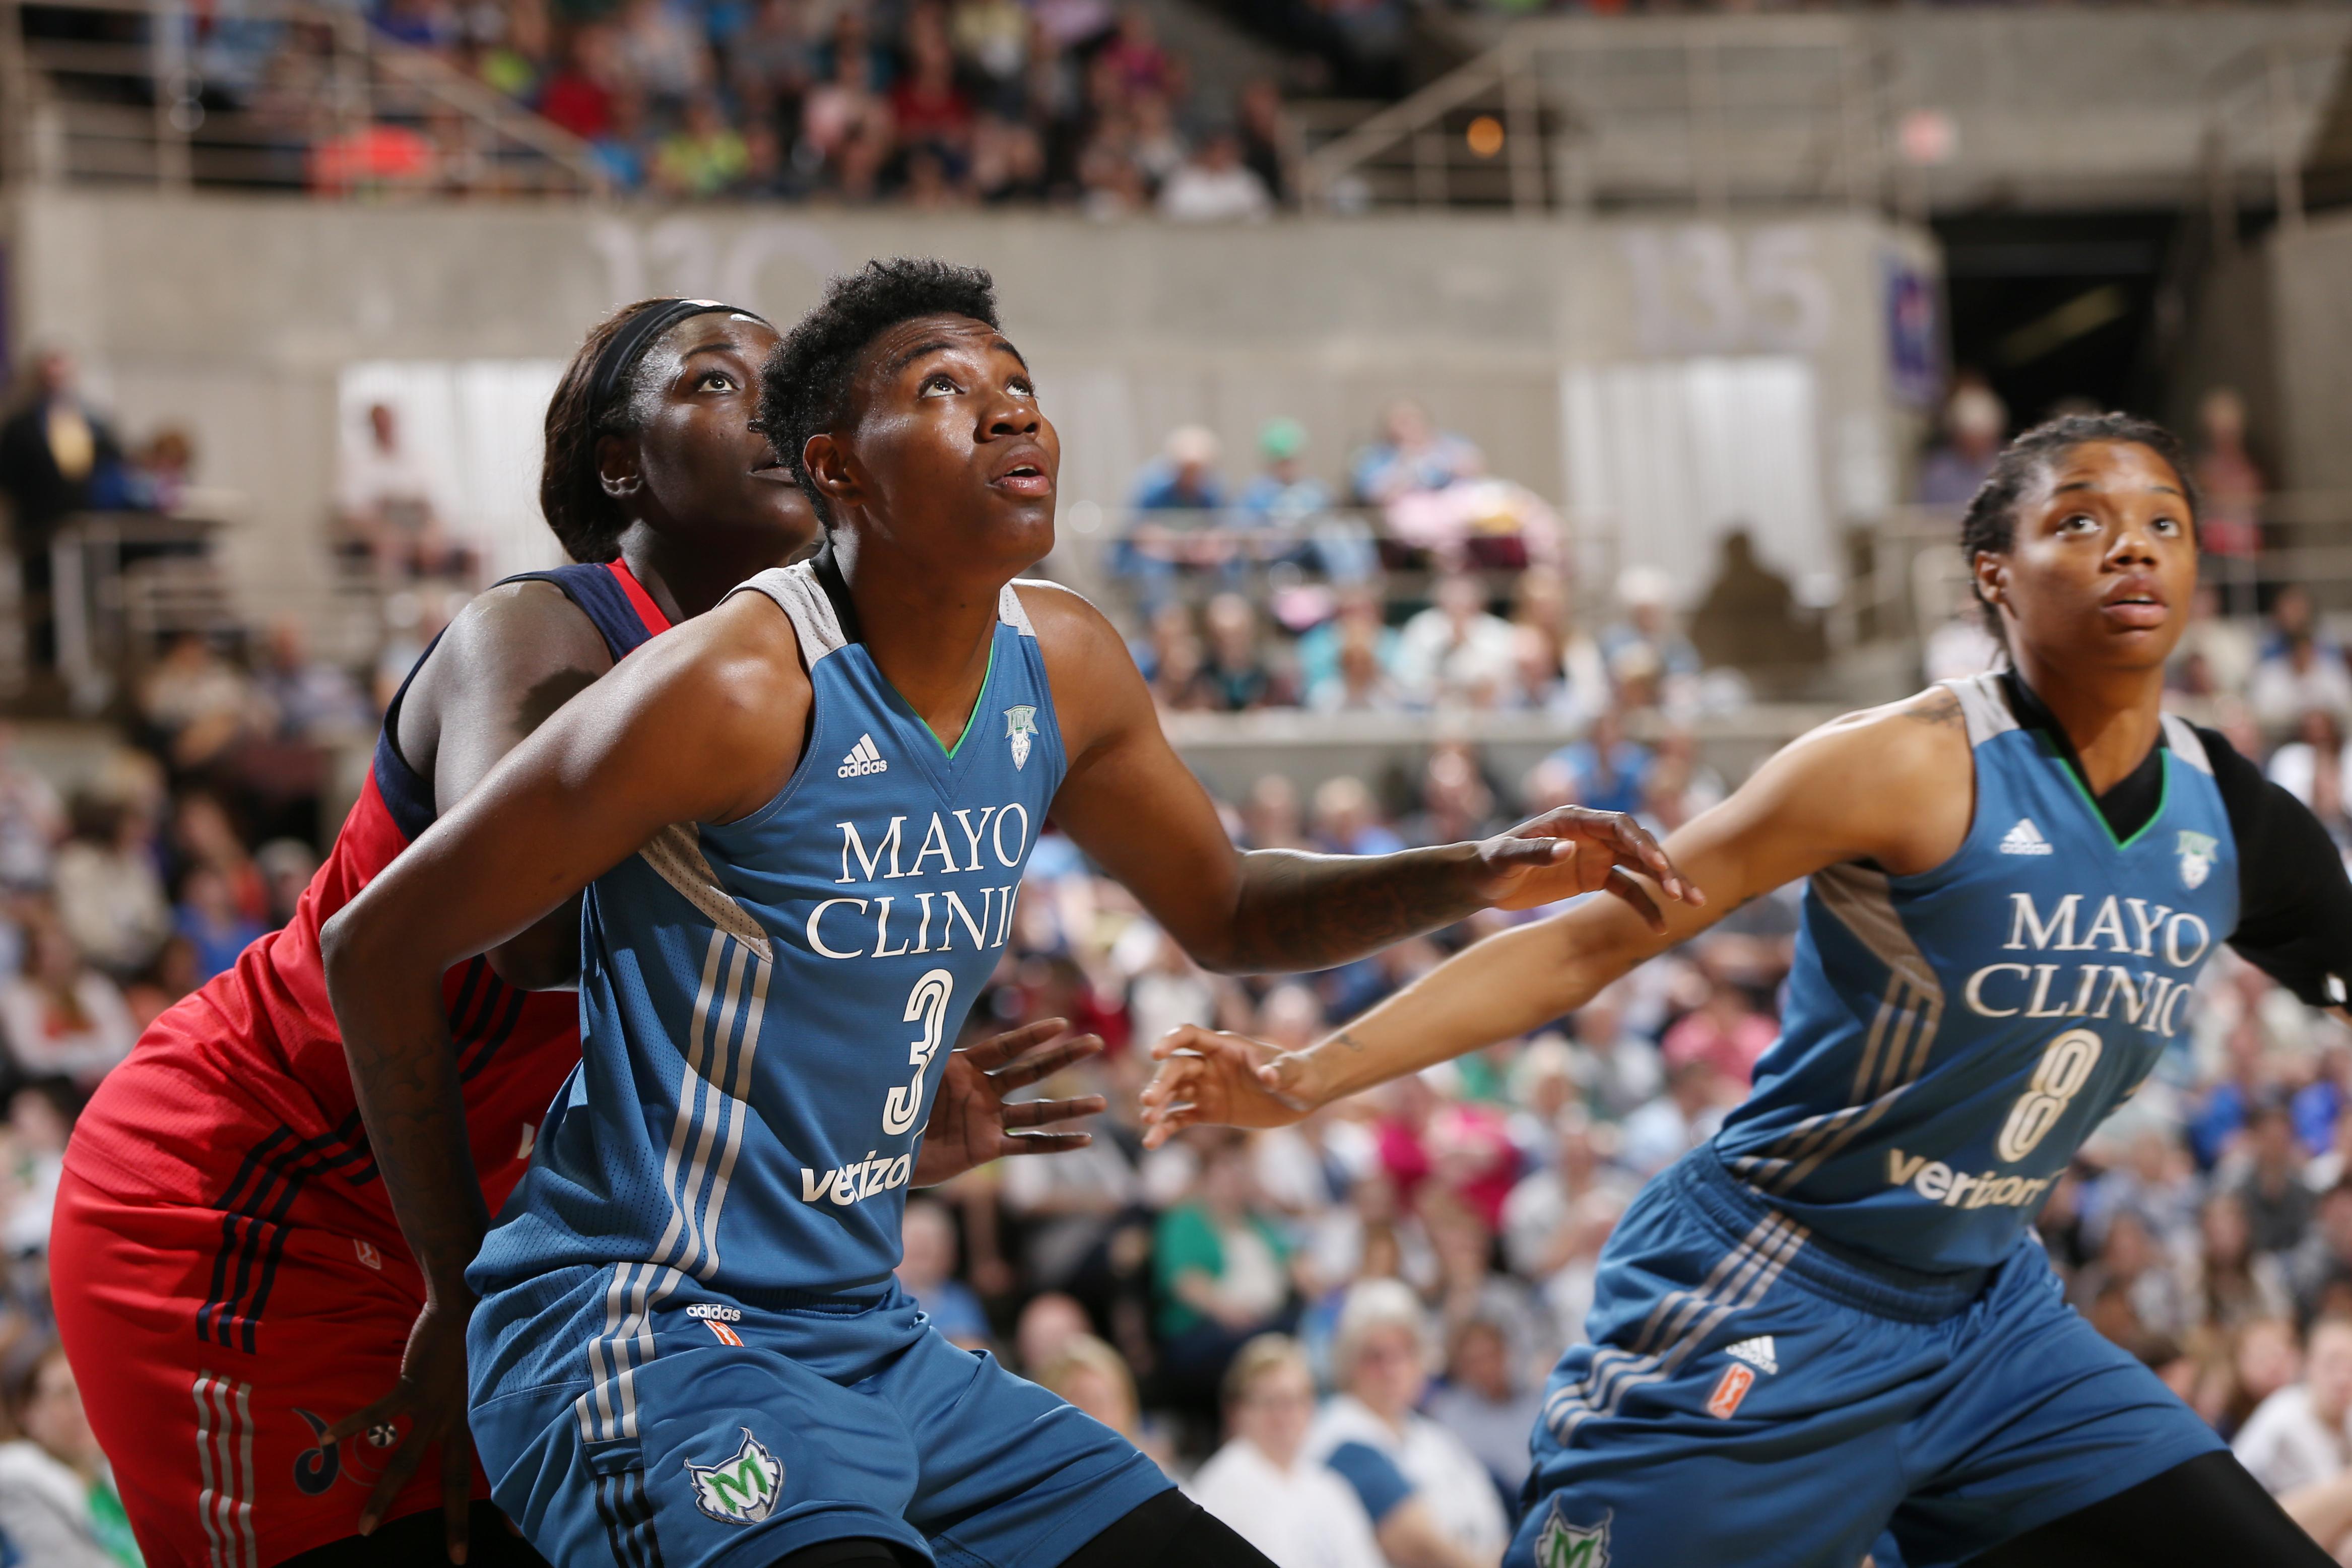 ROCHESTER, MN - MAY 8: Natasha Howard #3 of the Minnesota Lynx looks to rebound the basketball against Chelsey Lee #52 of the Washington Mystics during the preseason game on May 8, 2016 at the Mayo Civic Center in Rochester, Minnesota. NOTE TO USER: User expressly acknowledges and agrees that, by downloading and or using this Photograph, user is consenting to the terms and conditions of the Getty Images License Agreement. Mandatory Copyright Notice: Copyright 2016 NBAE (Photo by David Sherman/NBAE via Getty Images)